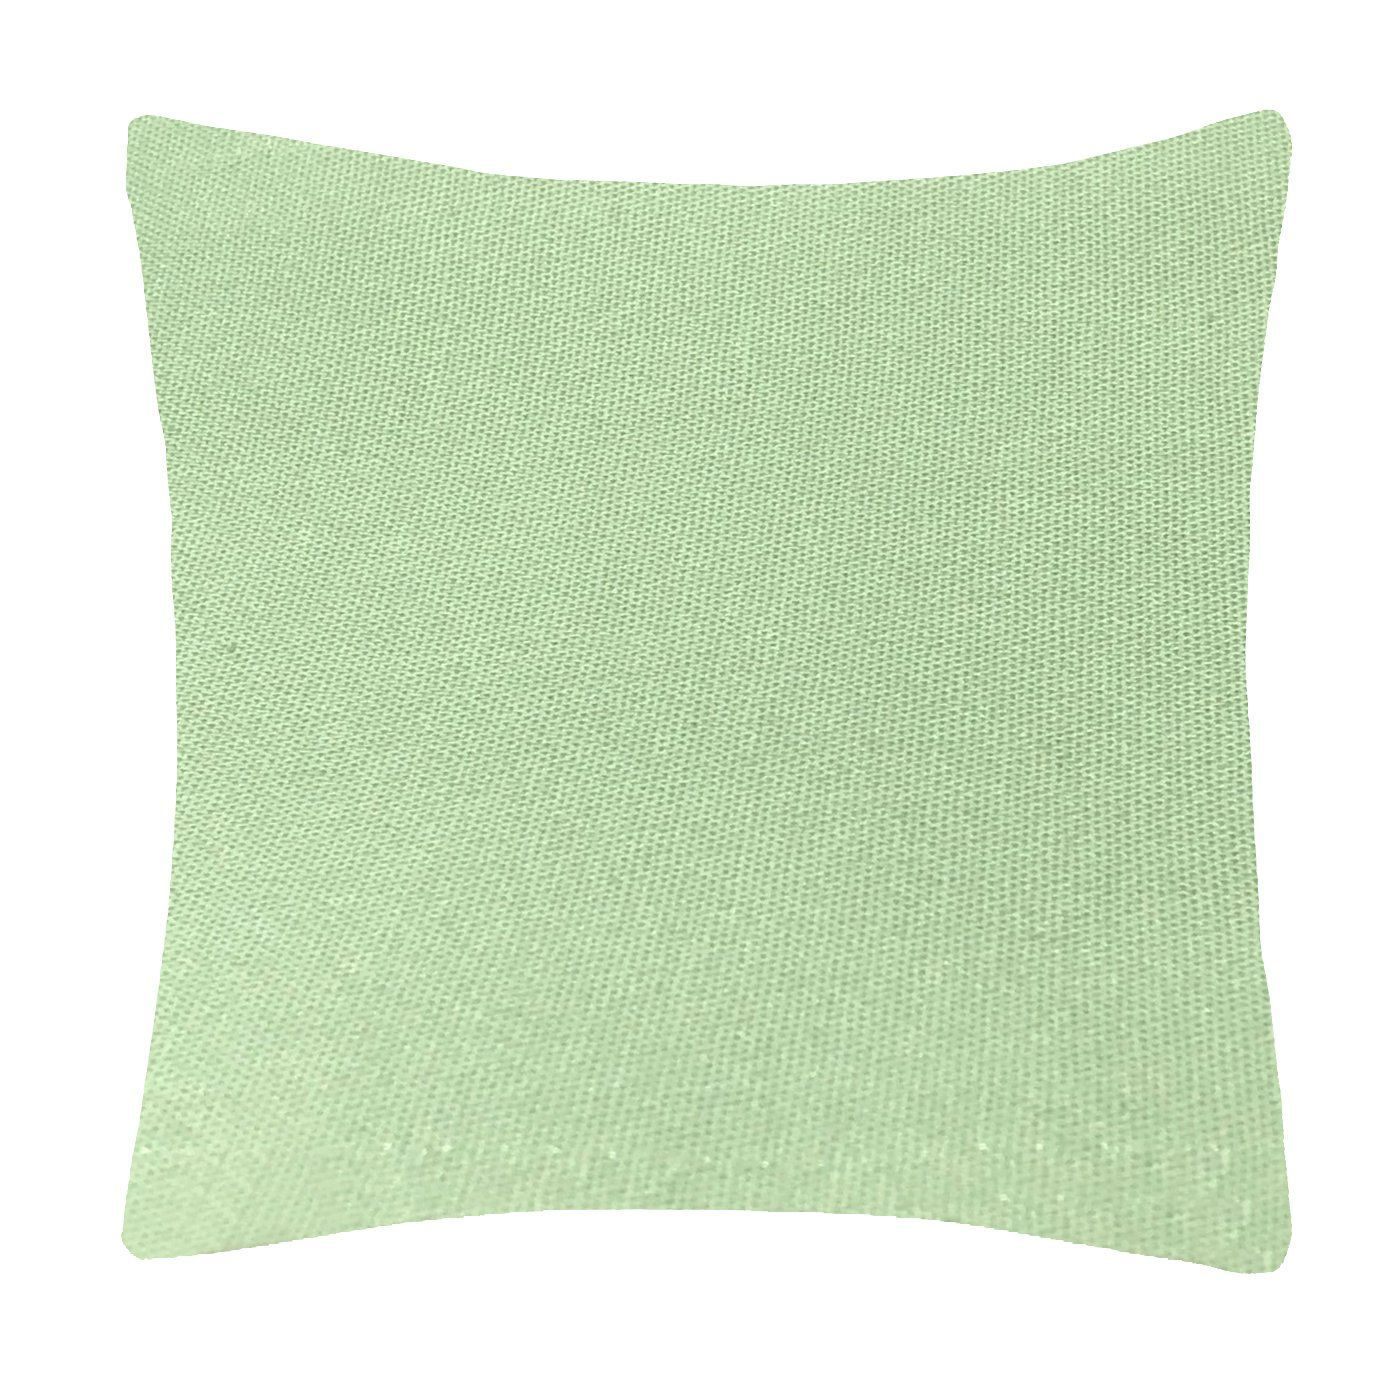 crazy tricks can change your life cheap decorative pillows sofas